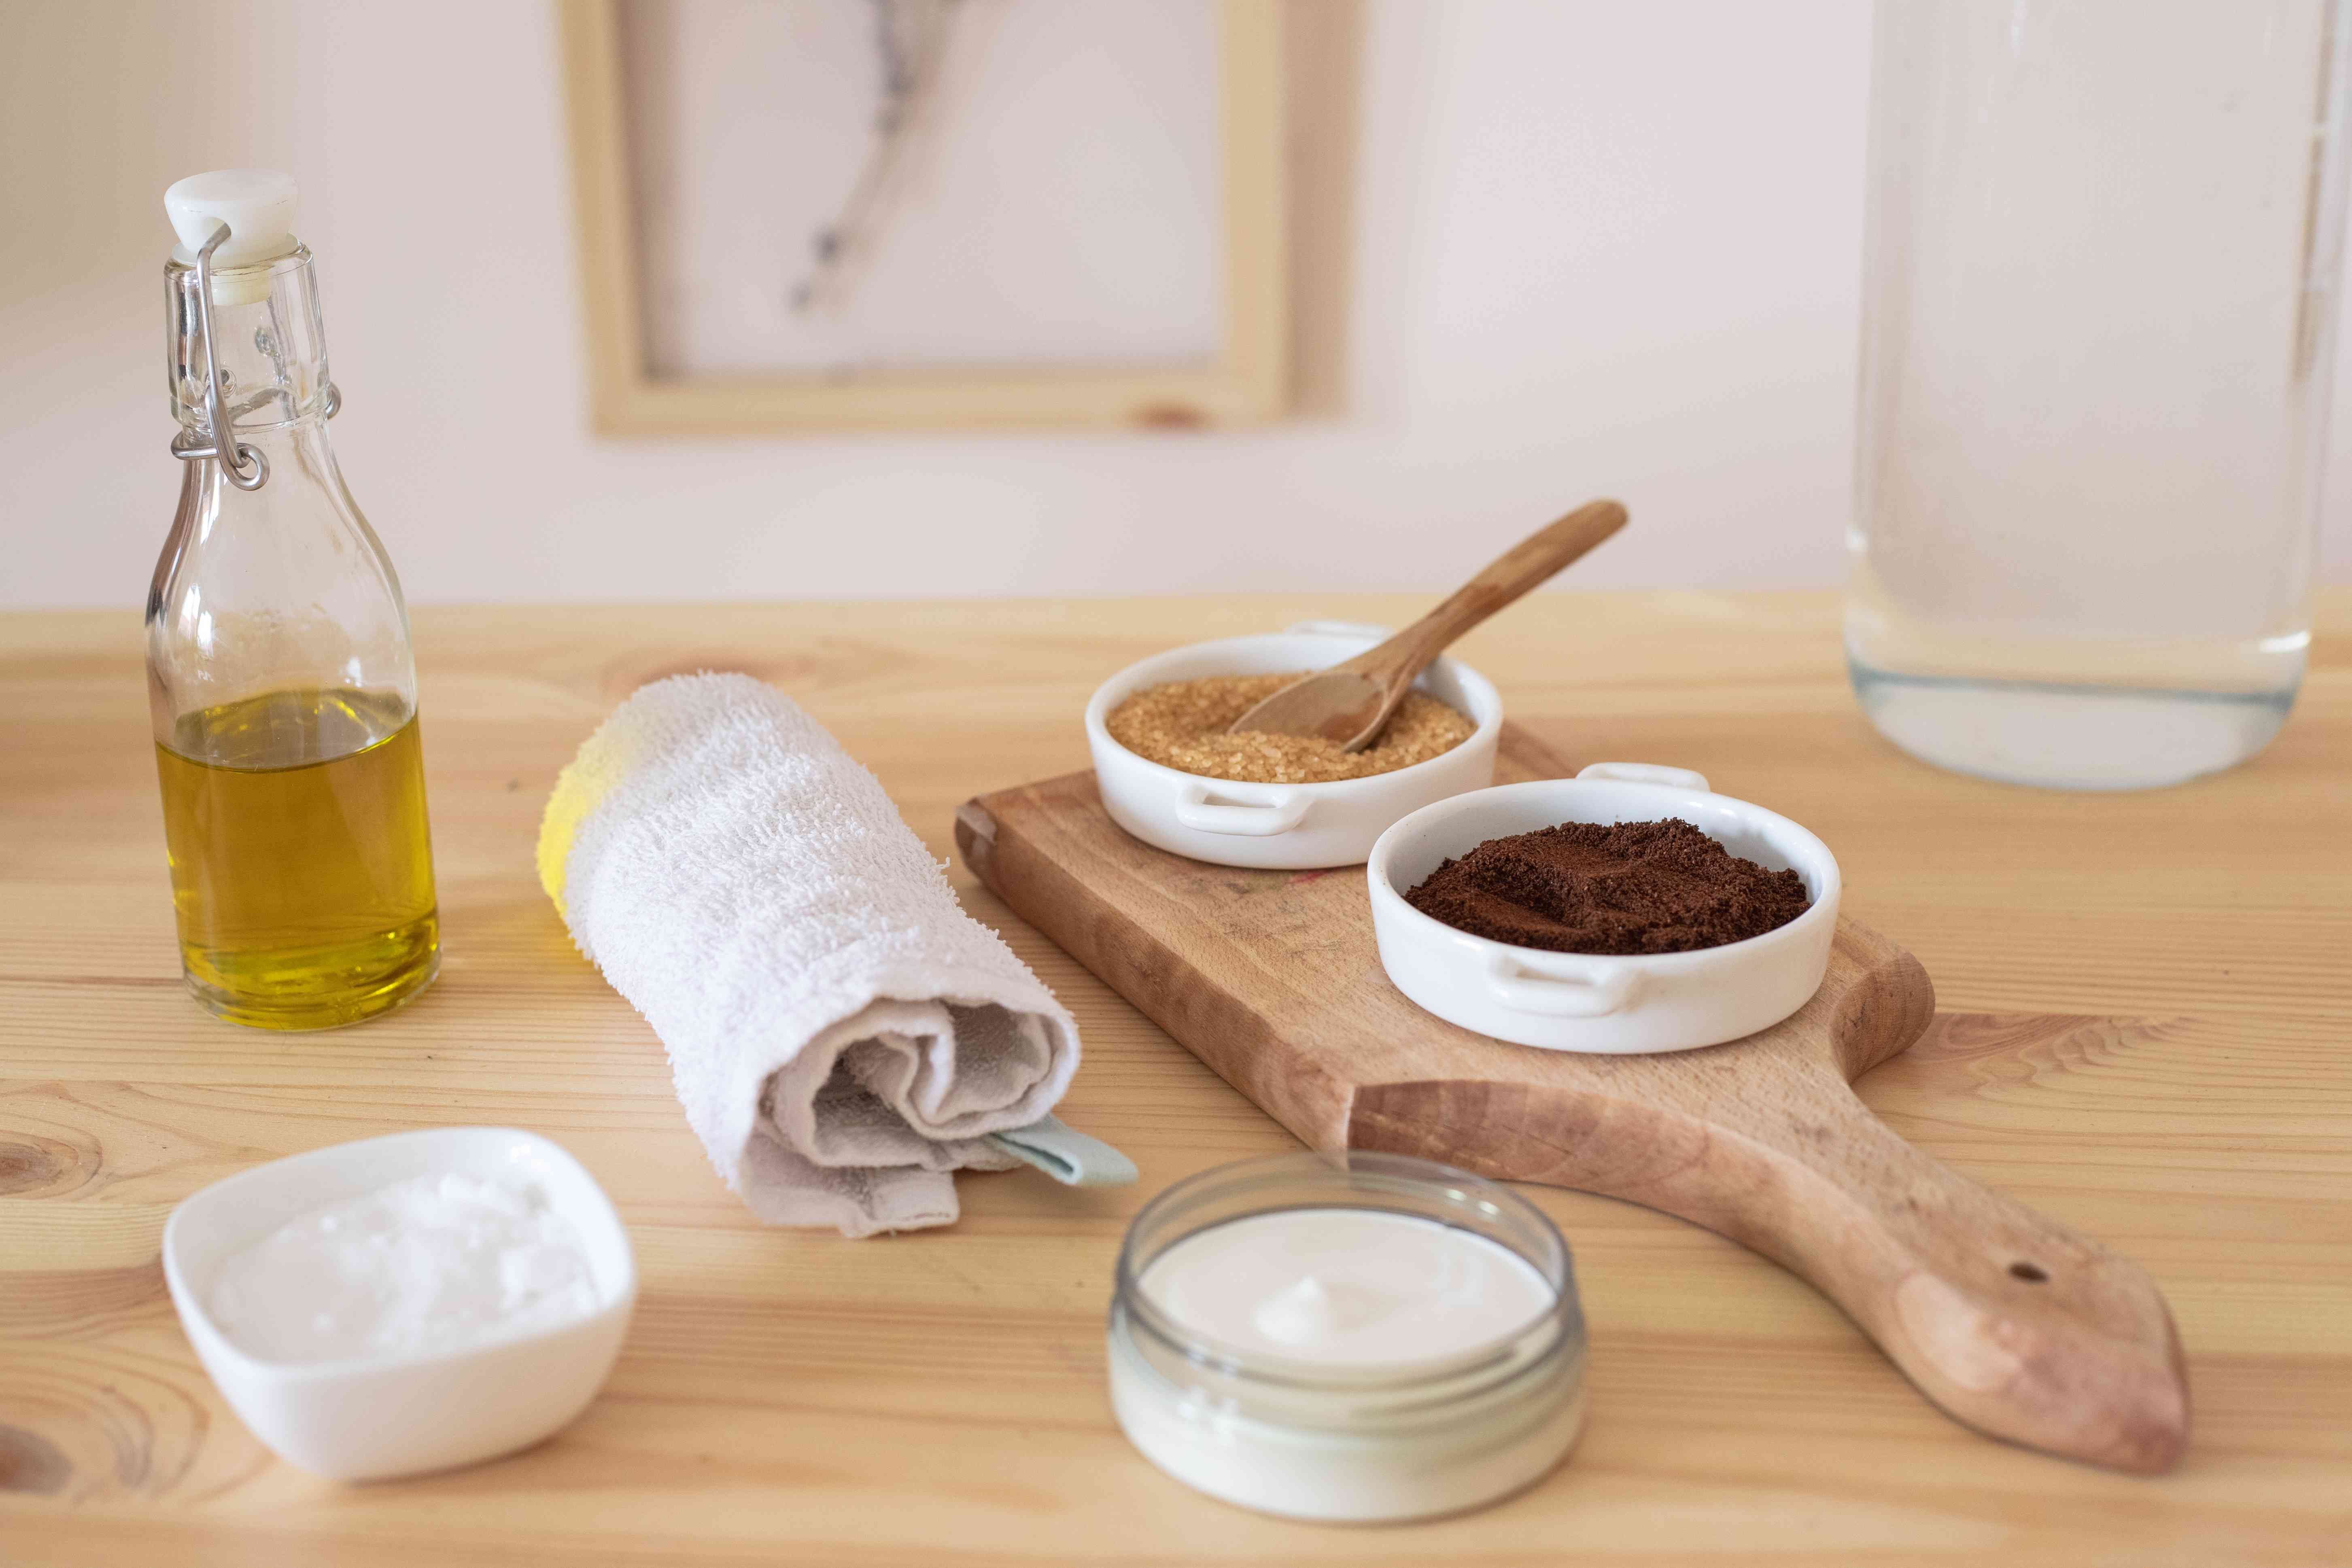 various oils, sugars, coffee grounds, and washcloths for a zero waste facial cleanse